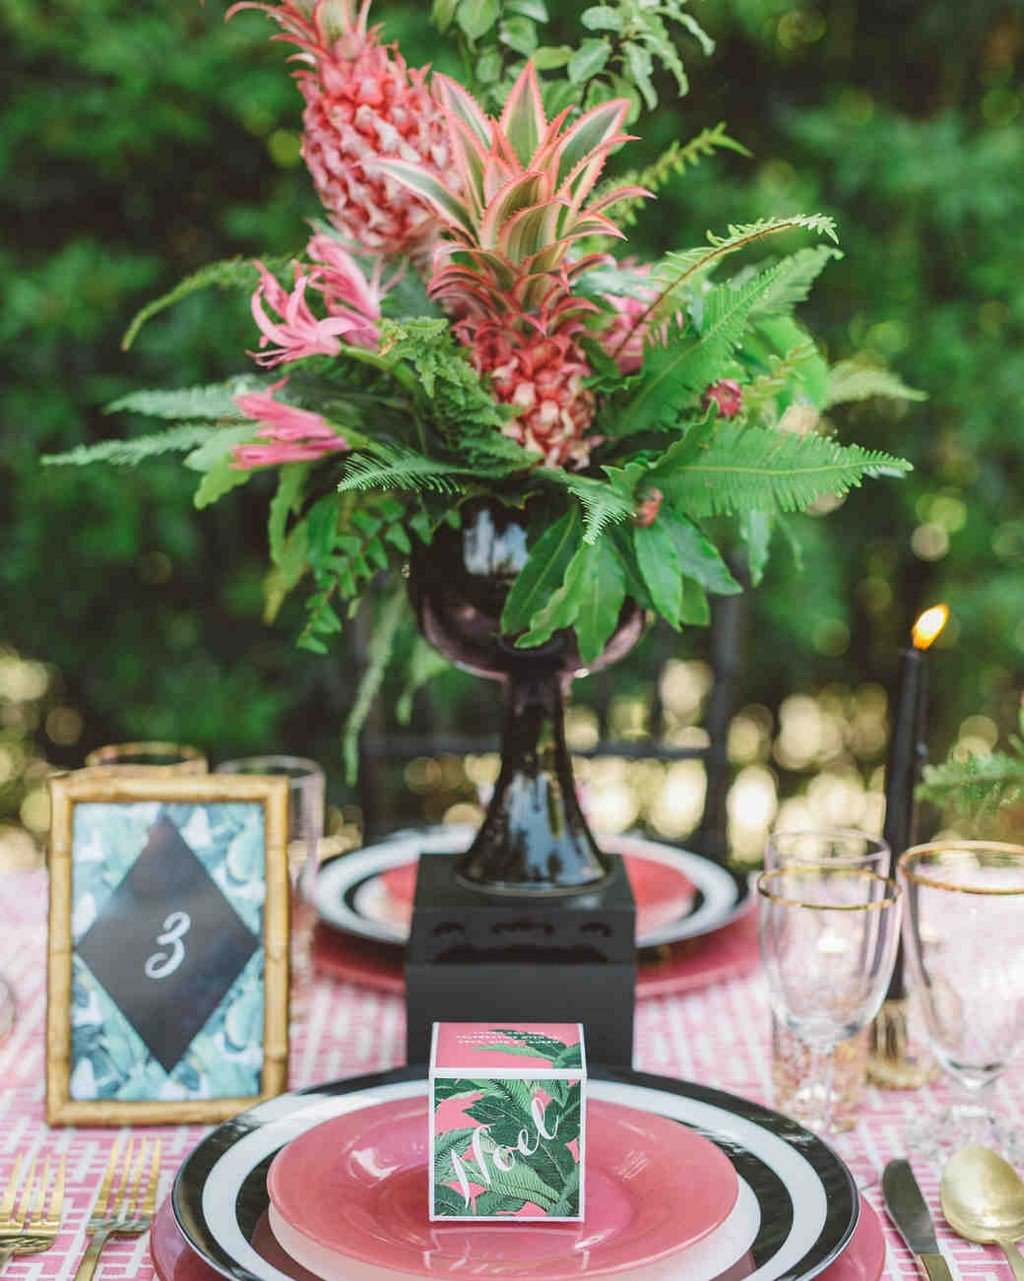 22 Wedding Centerpieces Bursting with Fruits and Vegetables https://t.co/2DKXNTNWc4 https://t.co/ZdICHWxqja